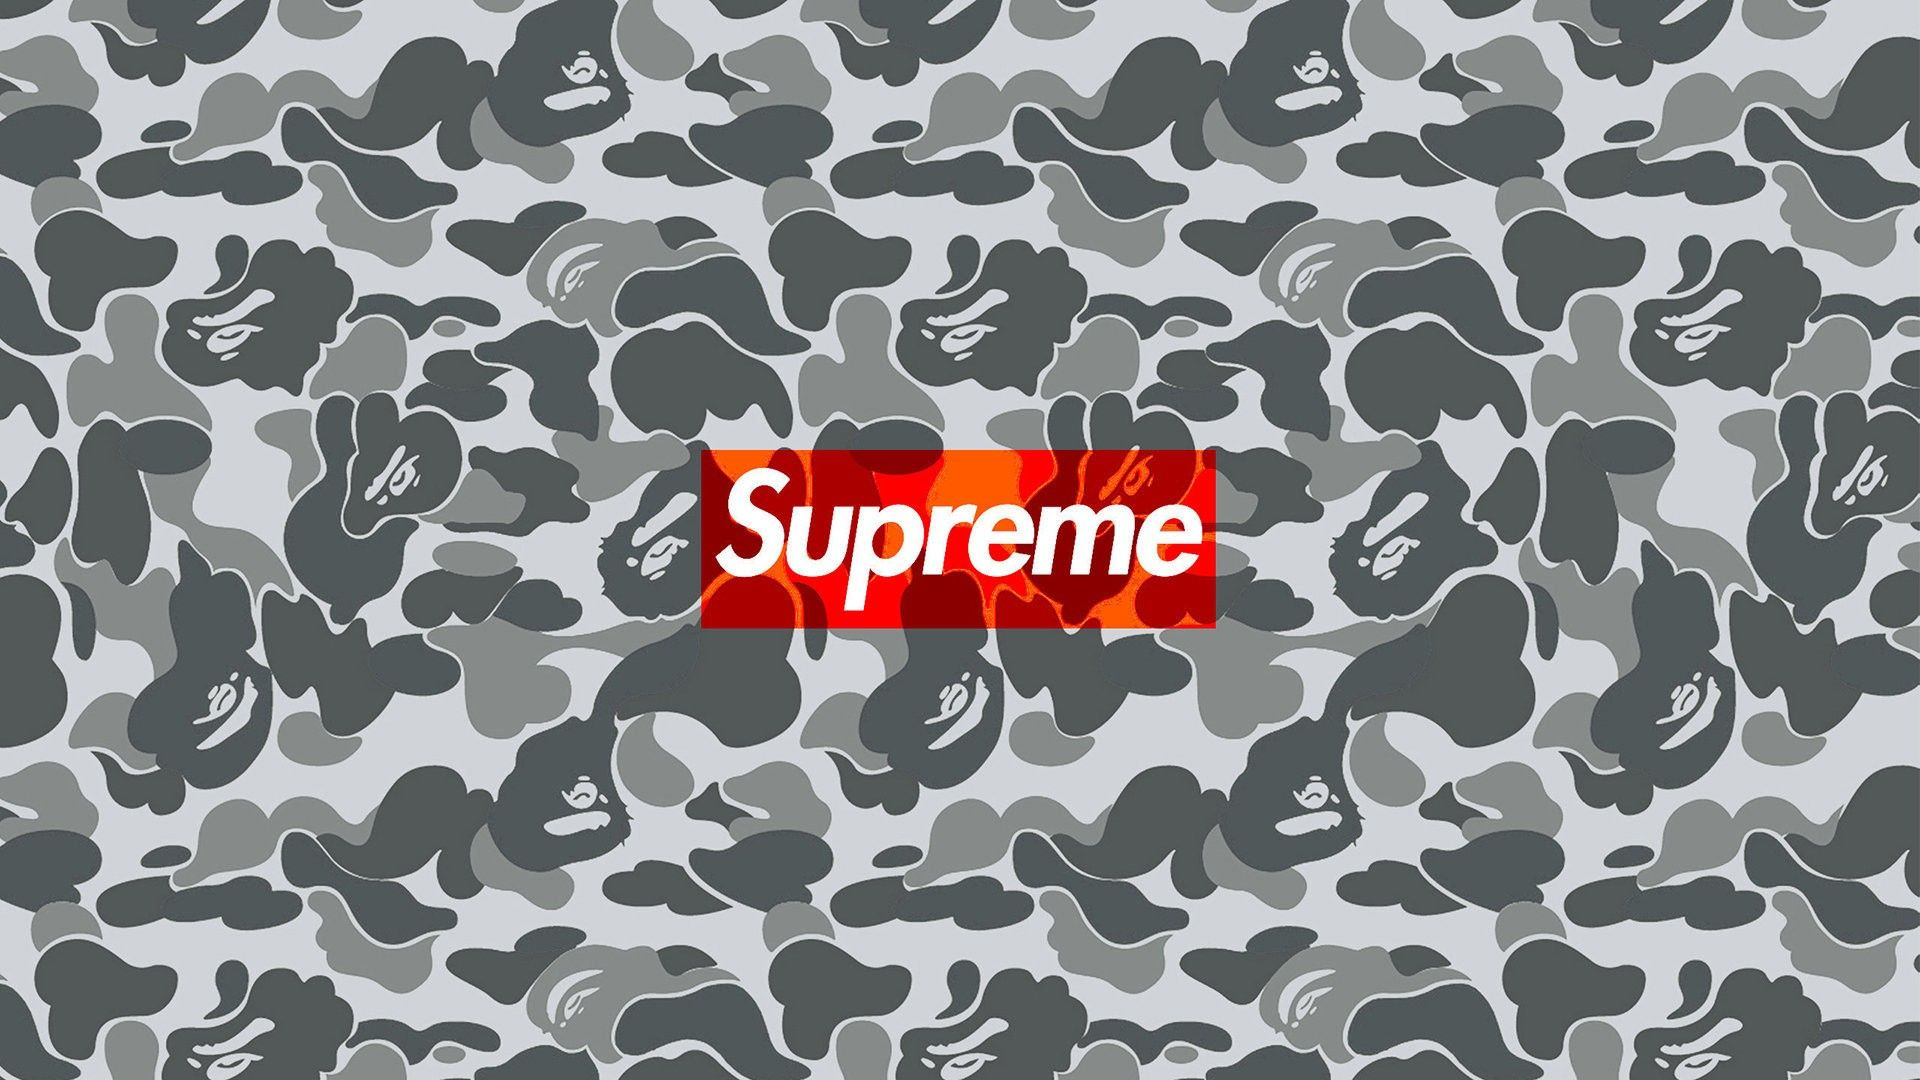 1920x1080 Supreme wallpaper ·① Download free High Resolution backgrounds for ...